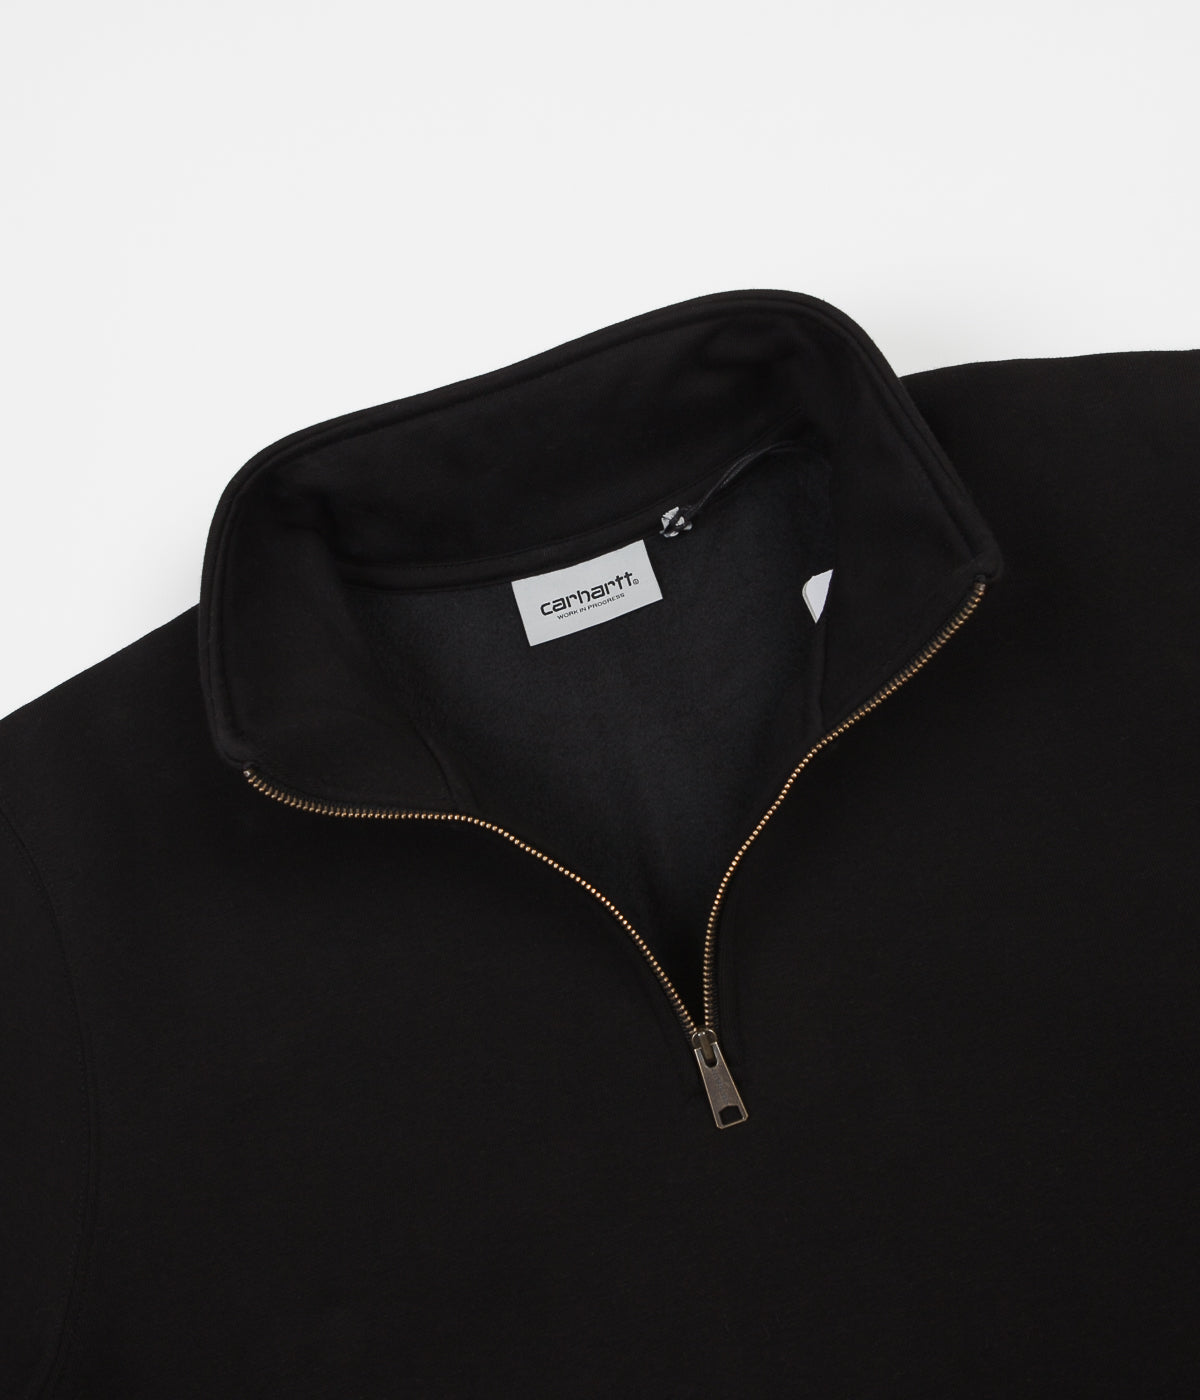 Carhartt Chase Zip Neck Sweatshirt - Black / Gold